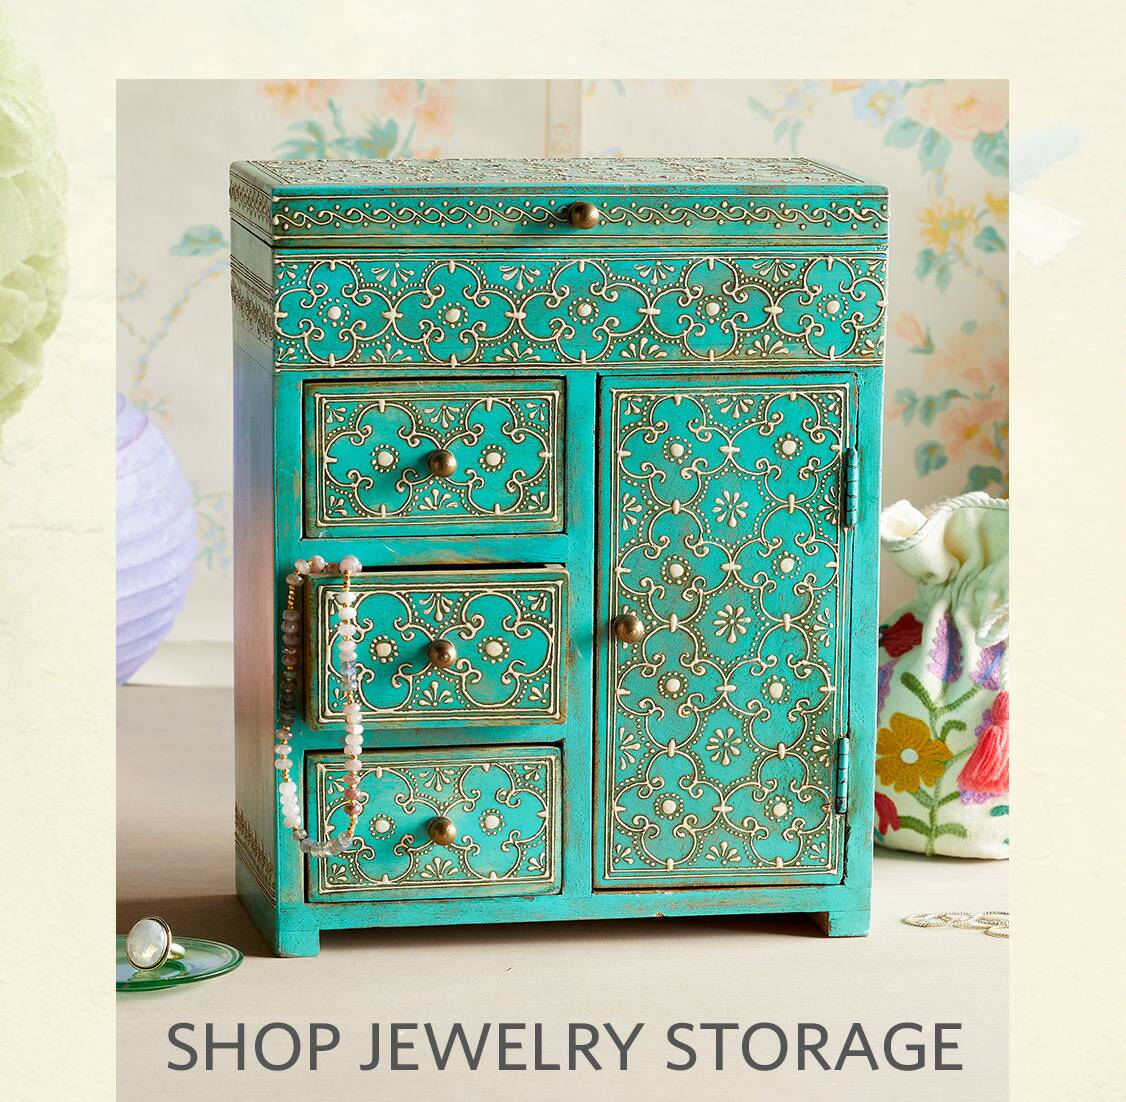 Shop Jewelry Storage